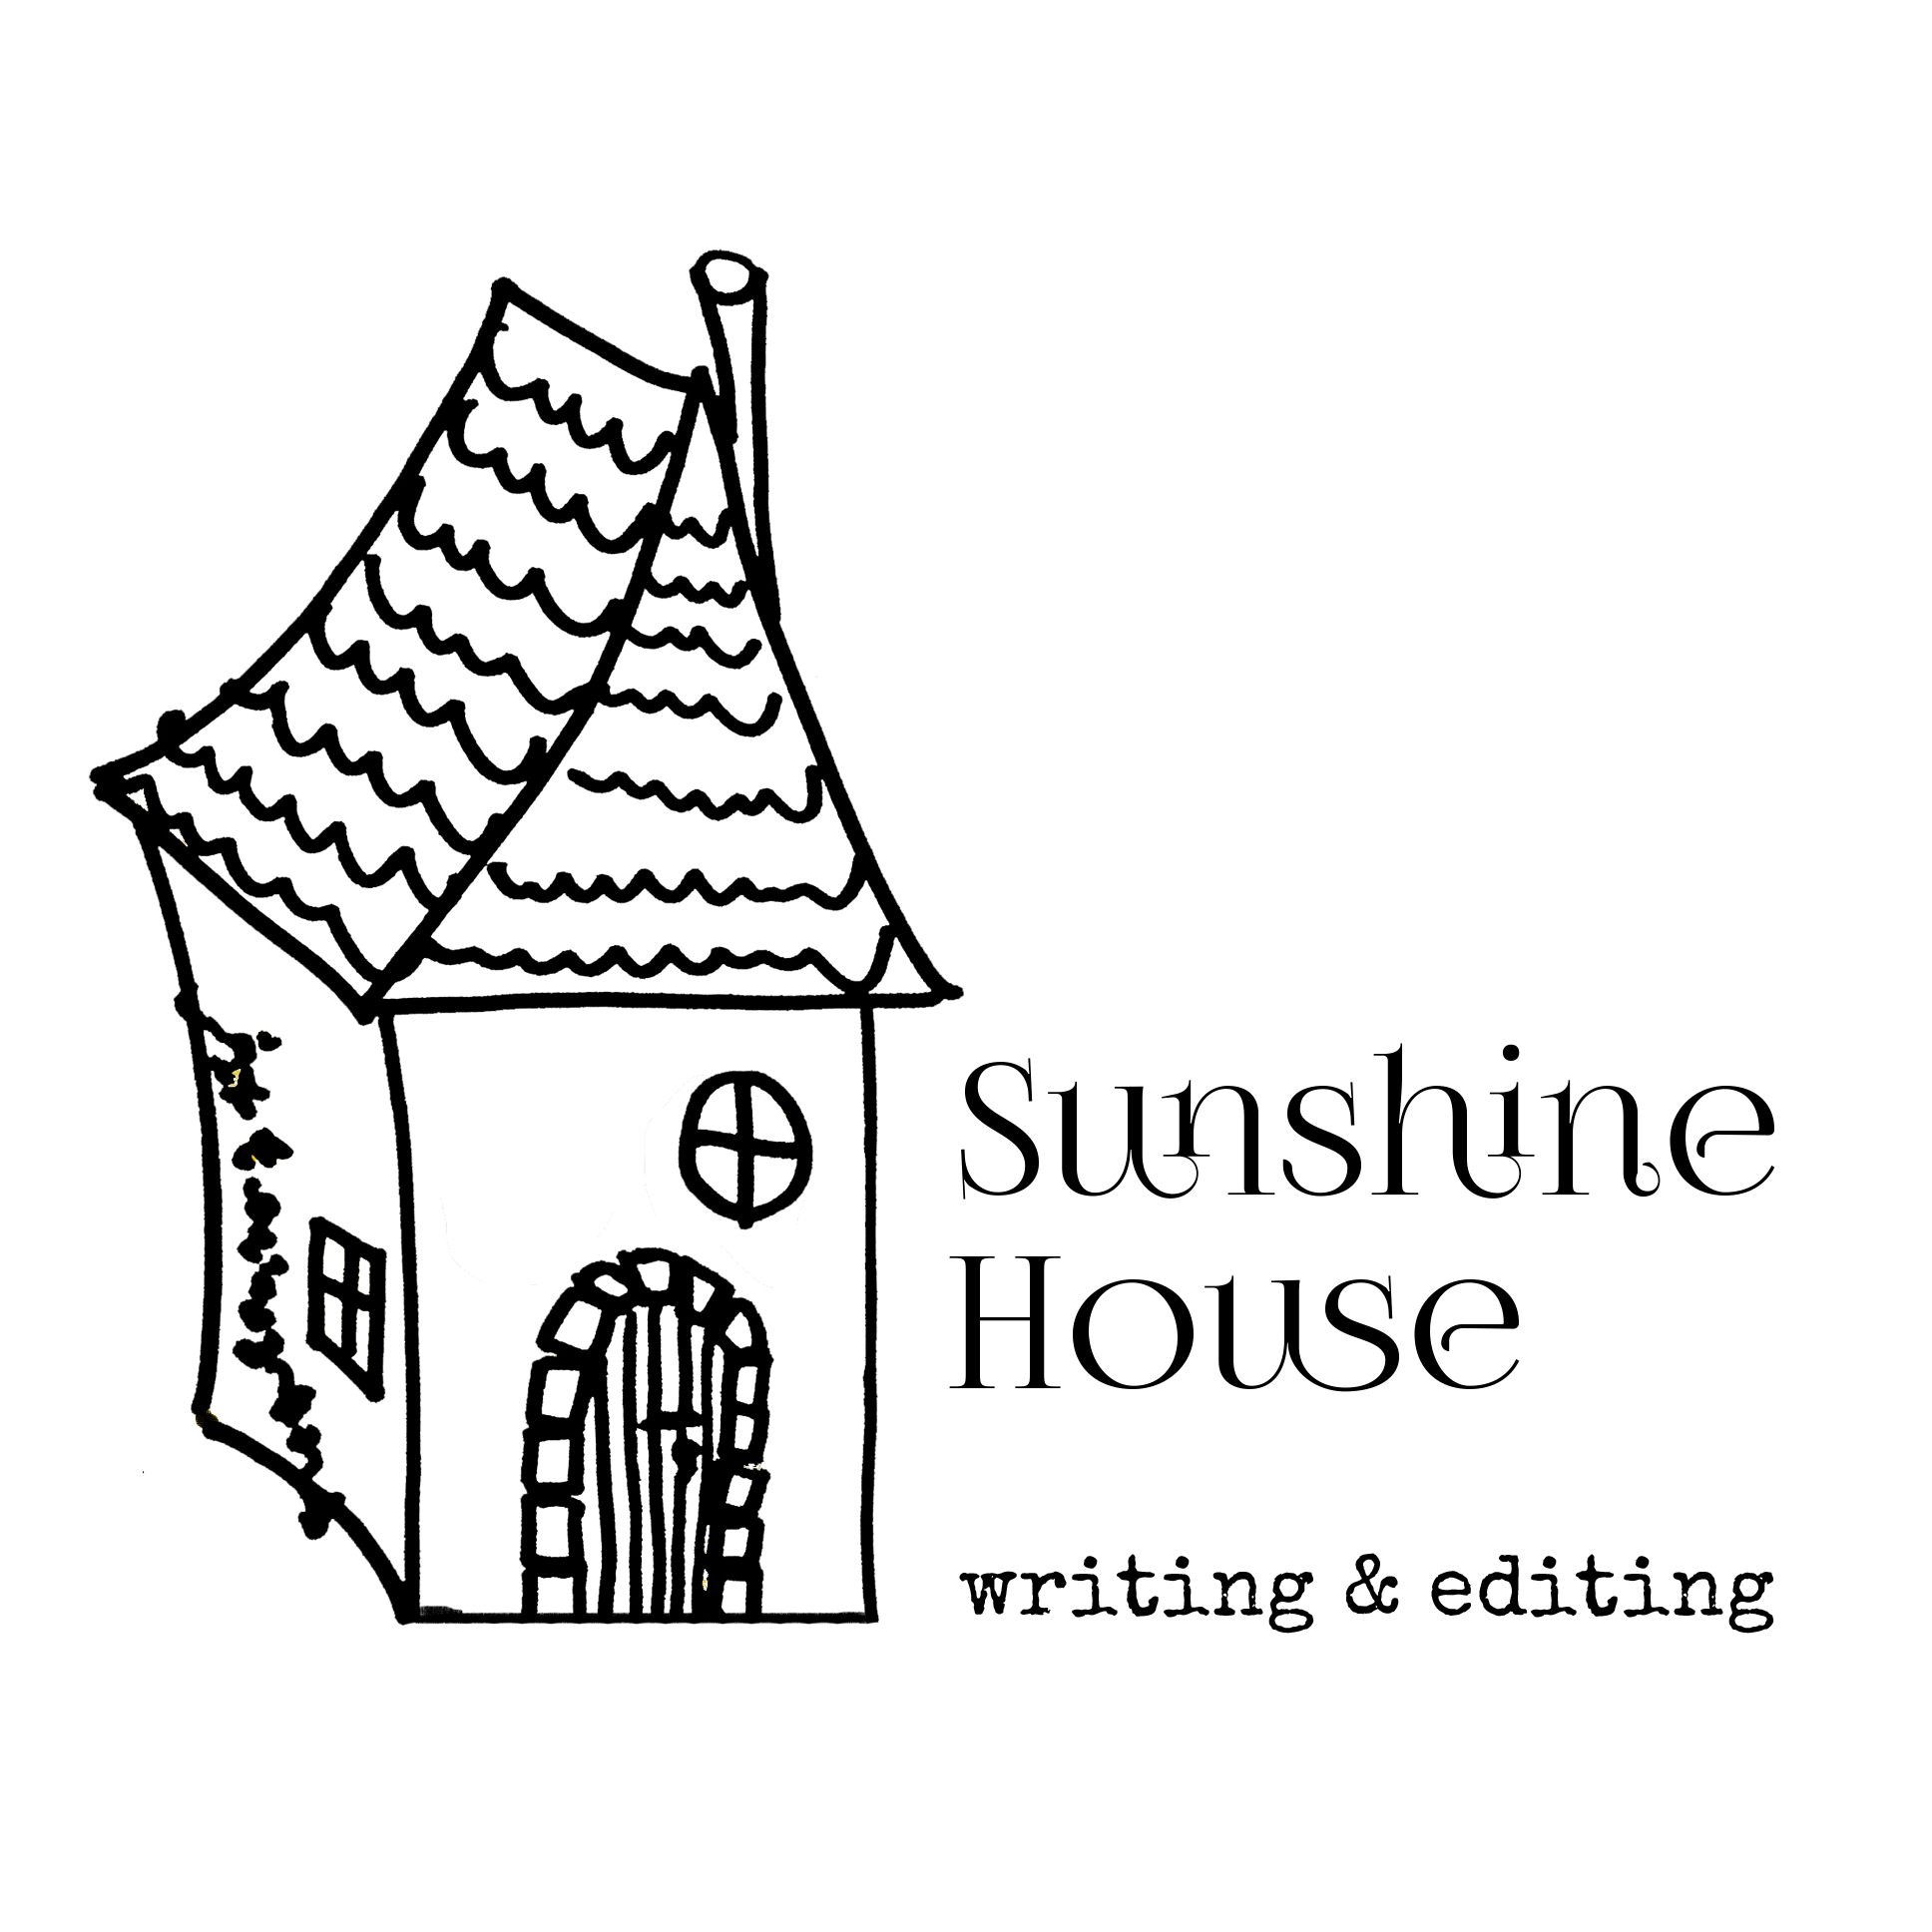 Straw house clipart black and white banner transparent library House Drawing Template at GetDrawings.com | Free for personal use ... banner transparent library